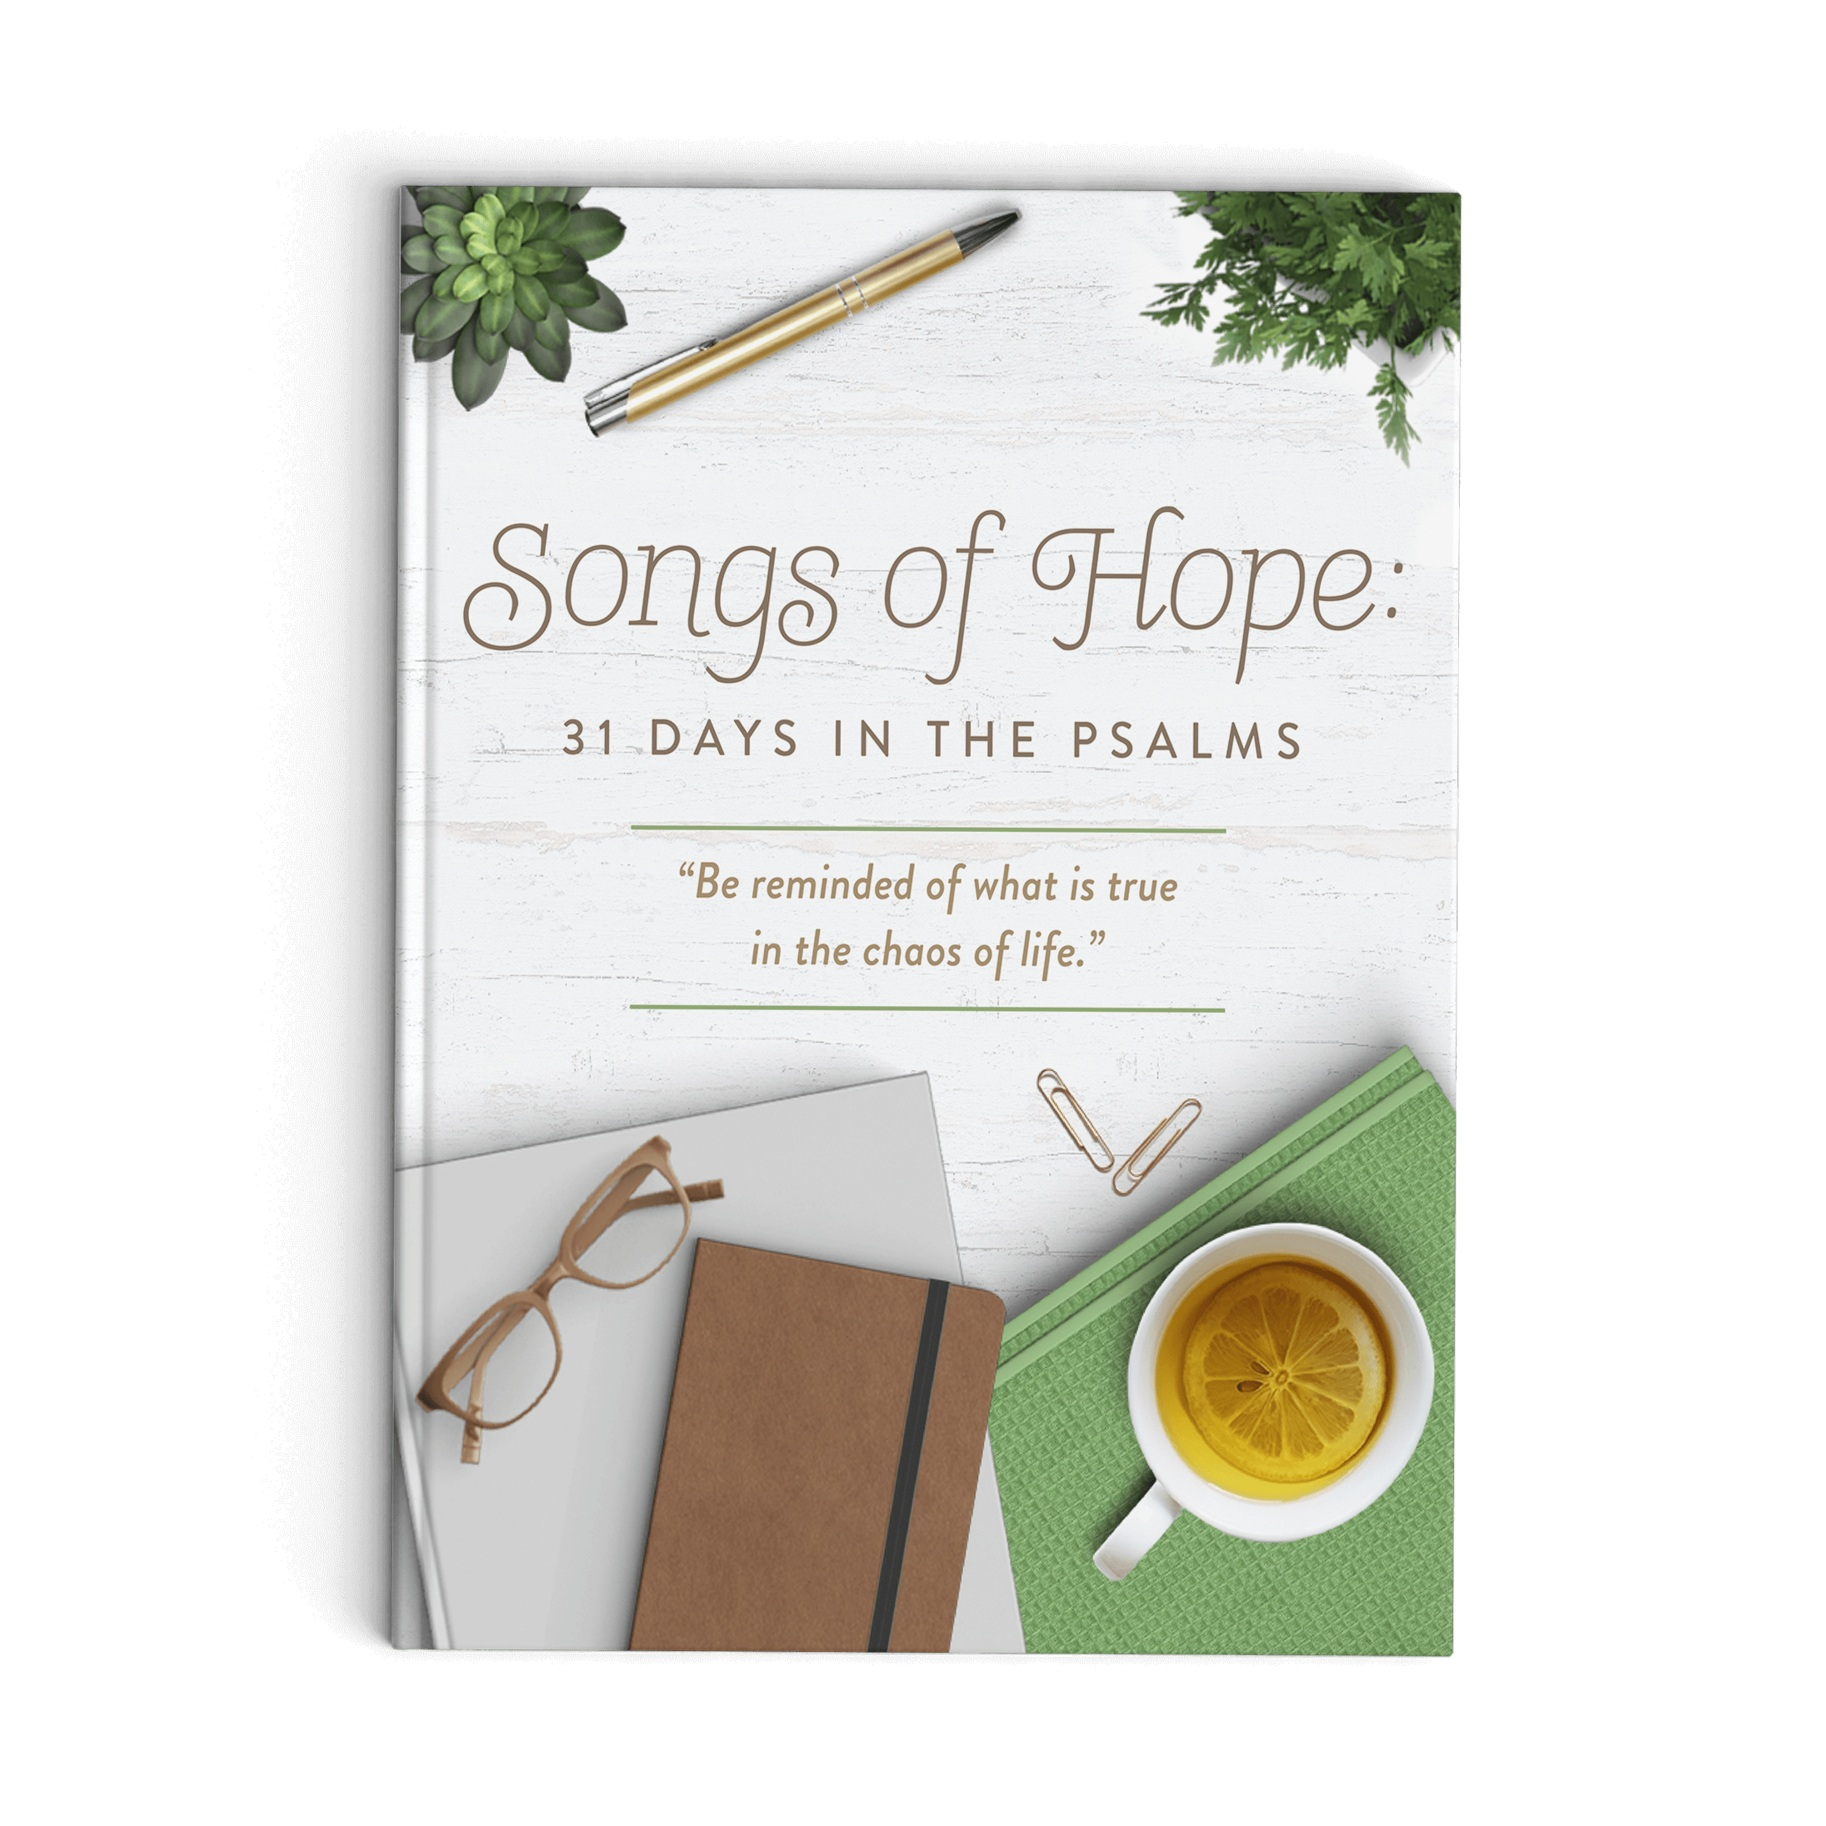 New Devotional - Songs of Hope: 31 Days in the Psalms